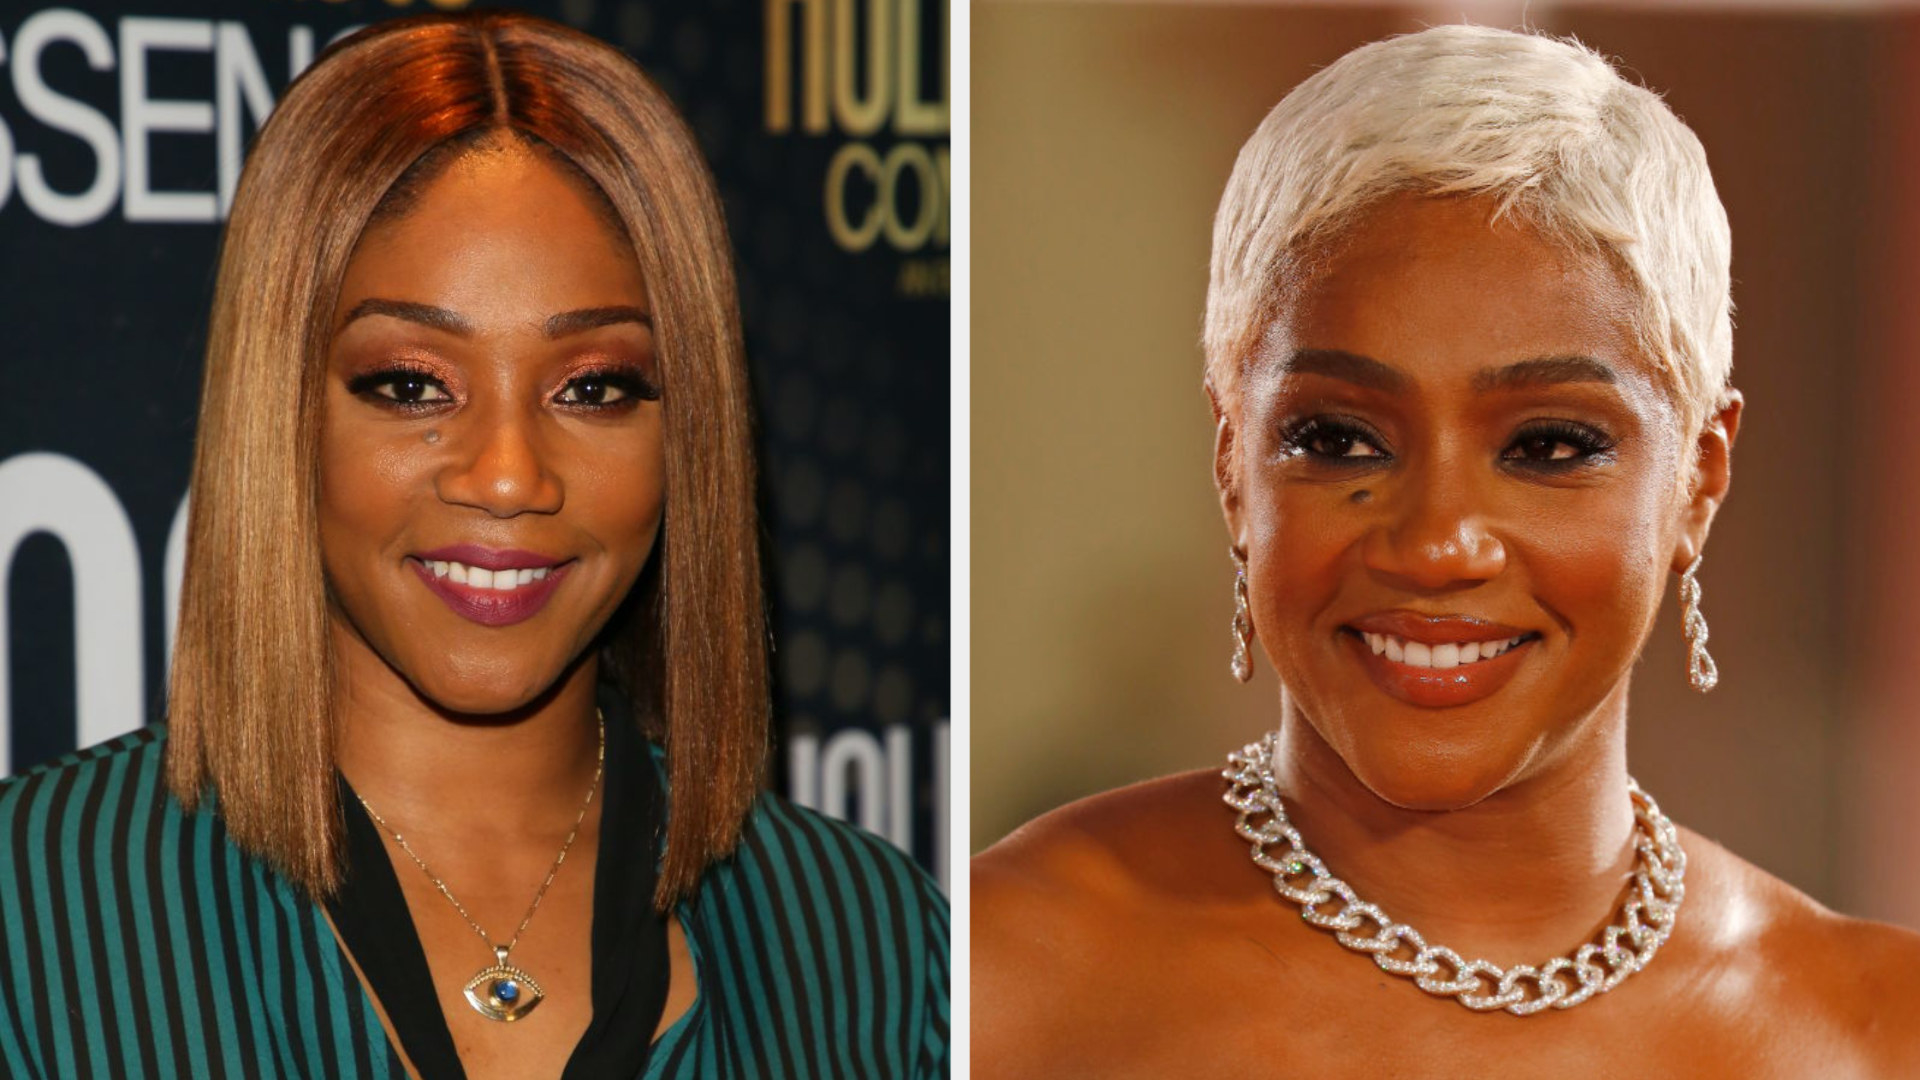 Tiffany with a brown bob and Tiffany with short platinum hair